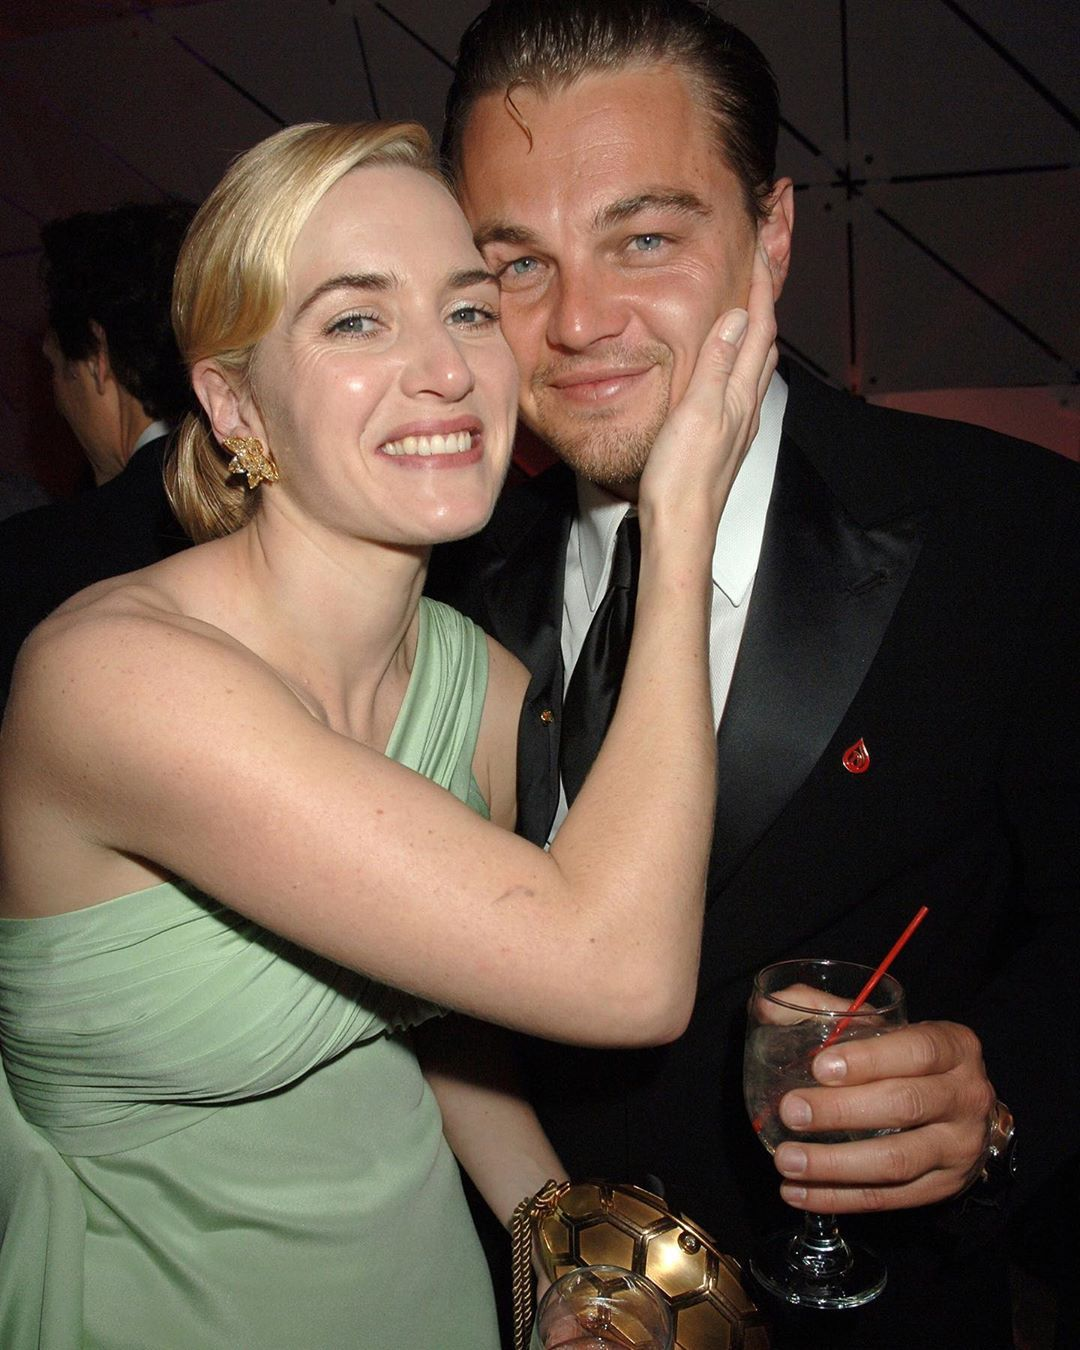 Movie Movies Film Show They Look So Cute Together Kateelizabethwinslet Katewinslet Winslet Kateandleo Katew Leo And Kate Kate Winslet Leonardo Dicaprio